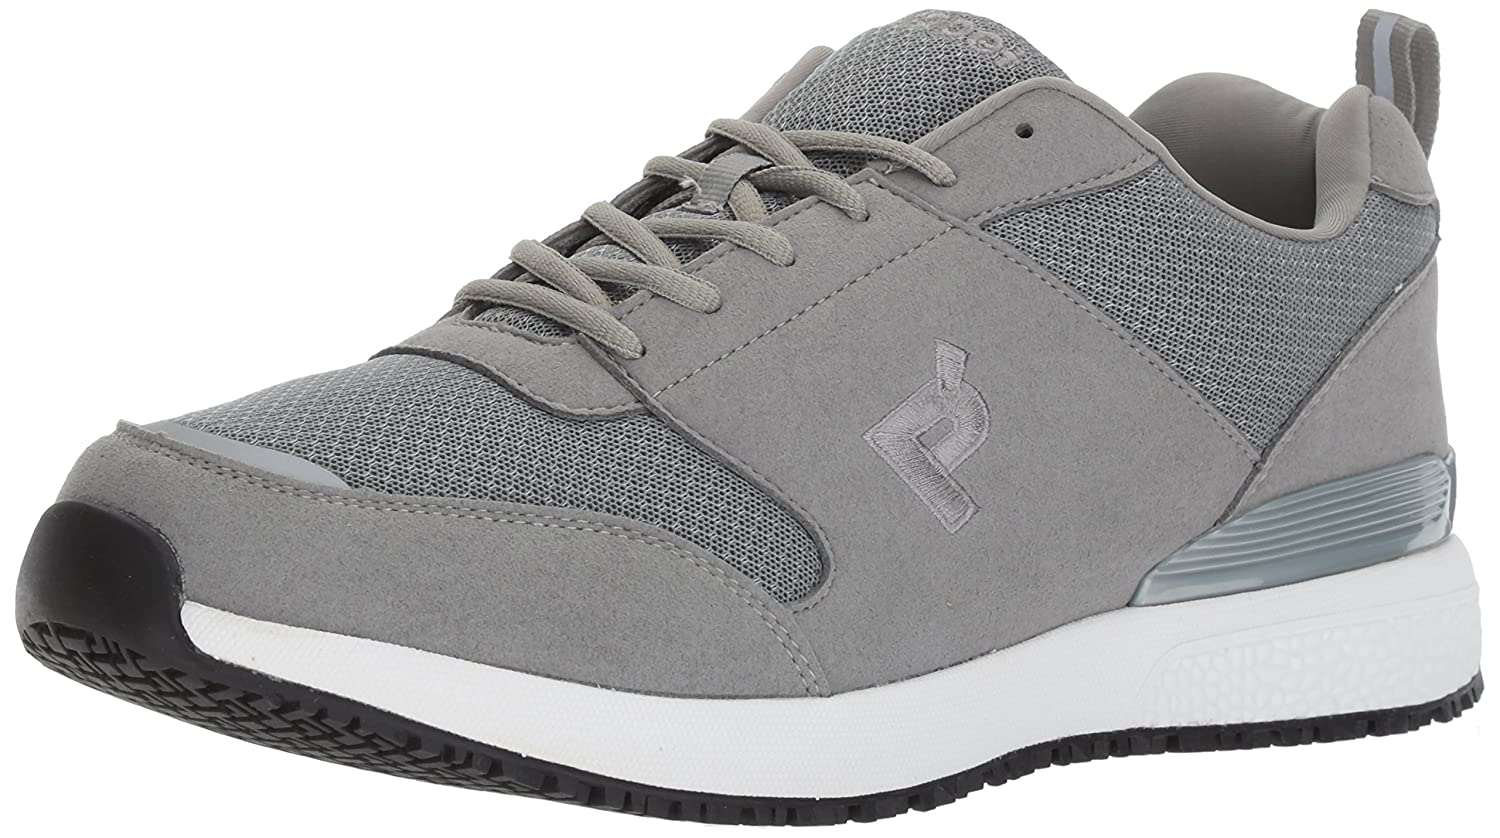 Propét Men's Simpson Work Shoe 11.5 5E US|Grey